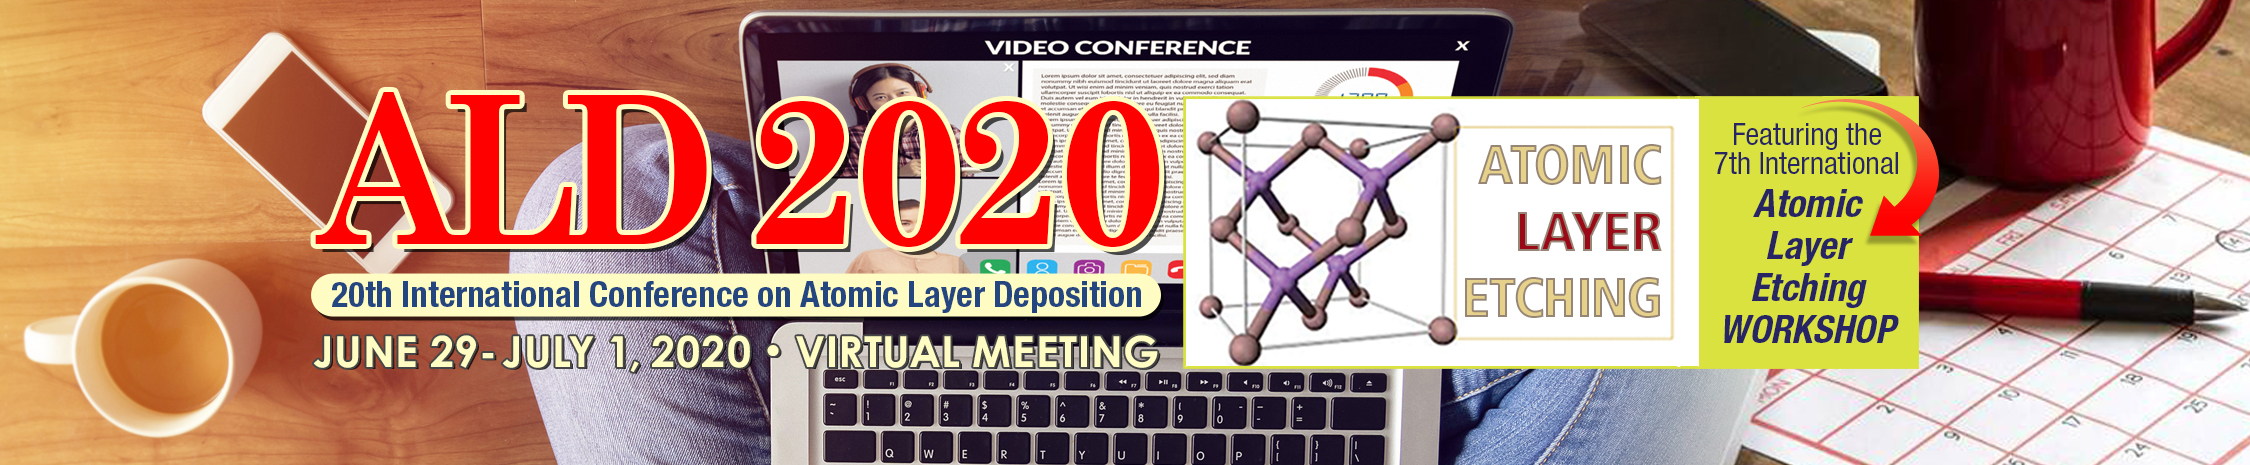 ALD/ALE 2020 Virtual Meeting